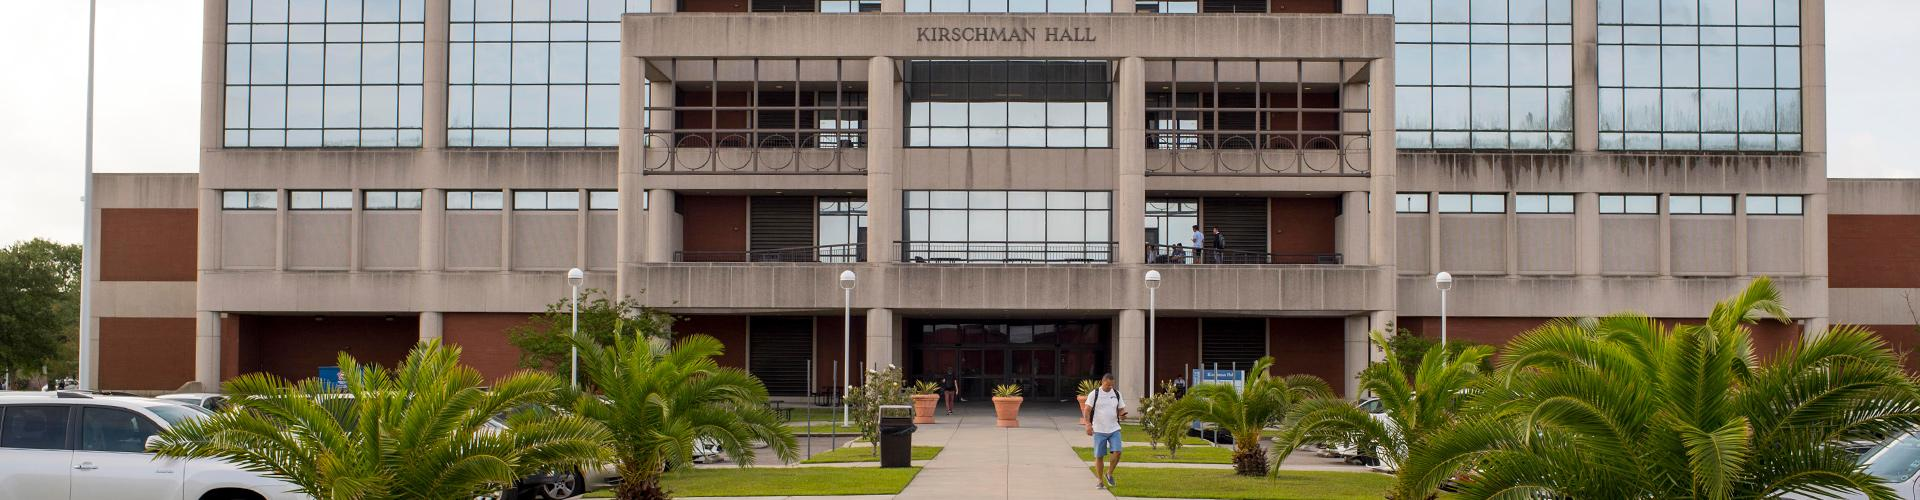 The front of the Kirschman Hall